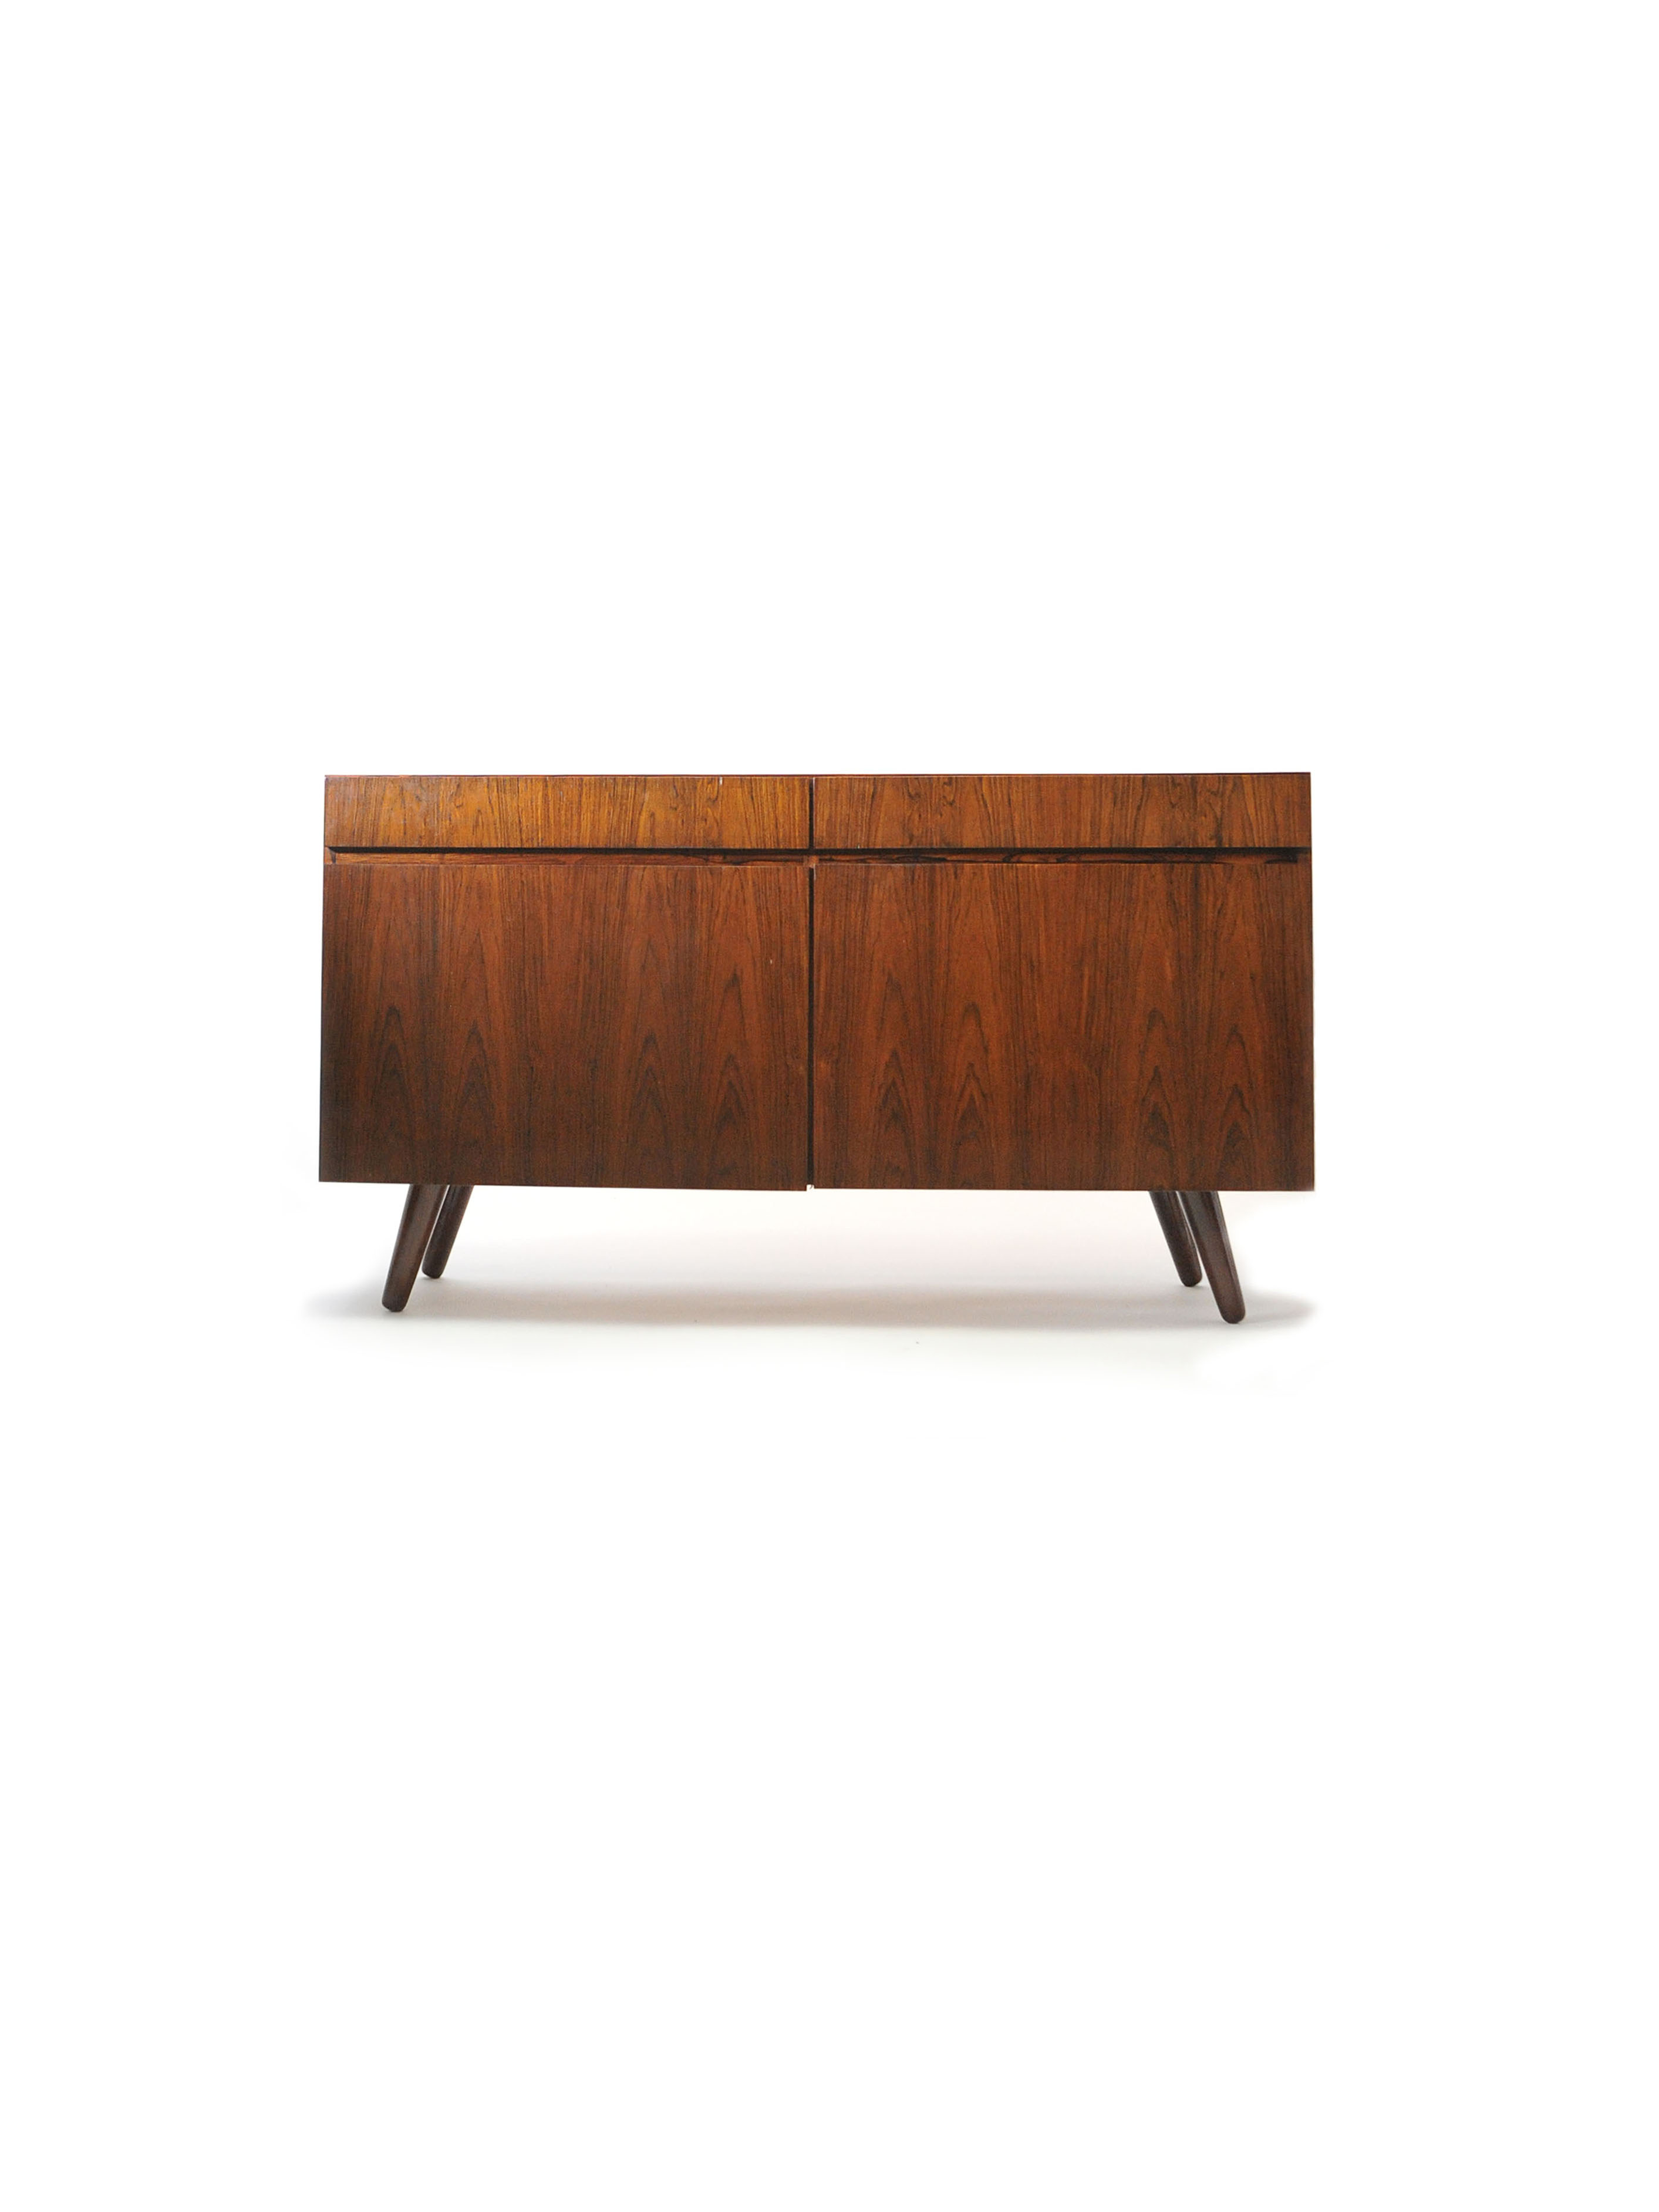 SIDEBOARD ATTRIBUTED TO IB KOFOD LARSEN